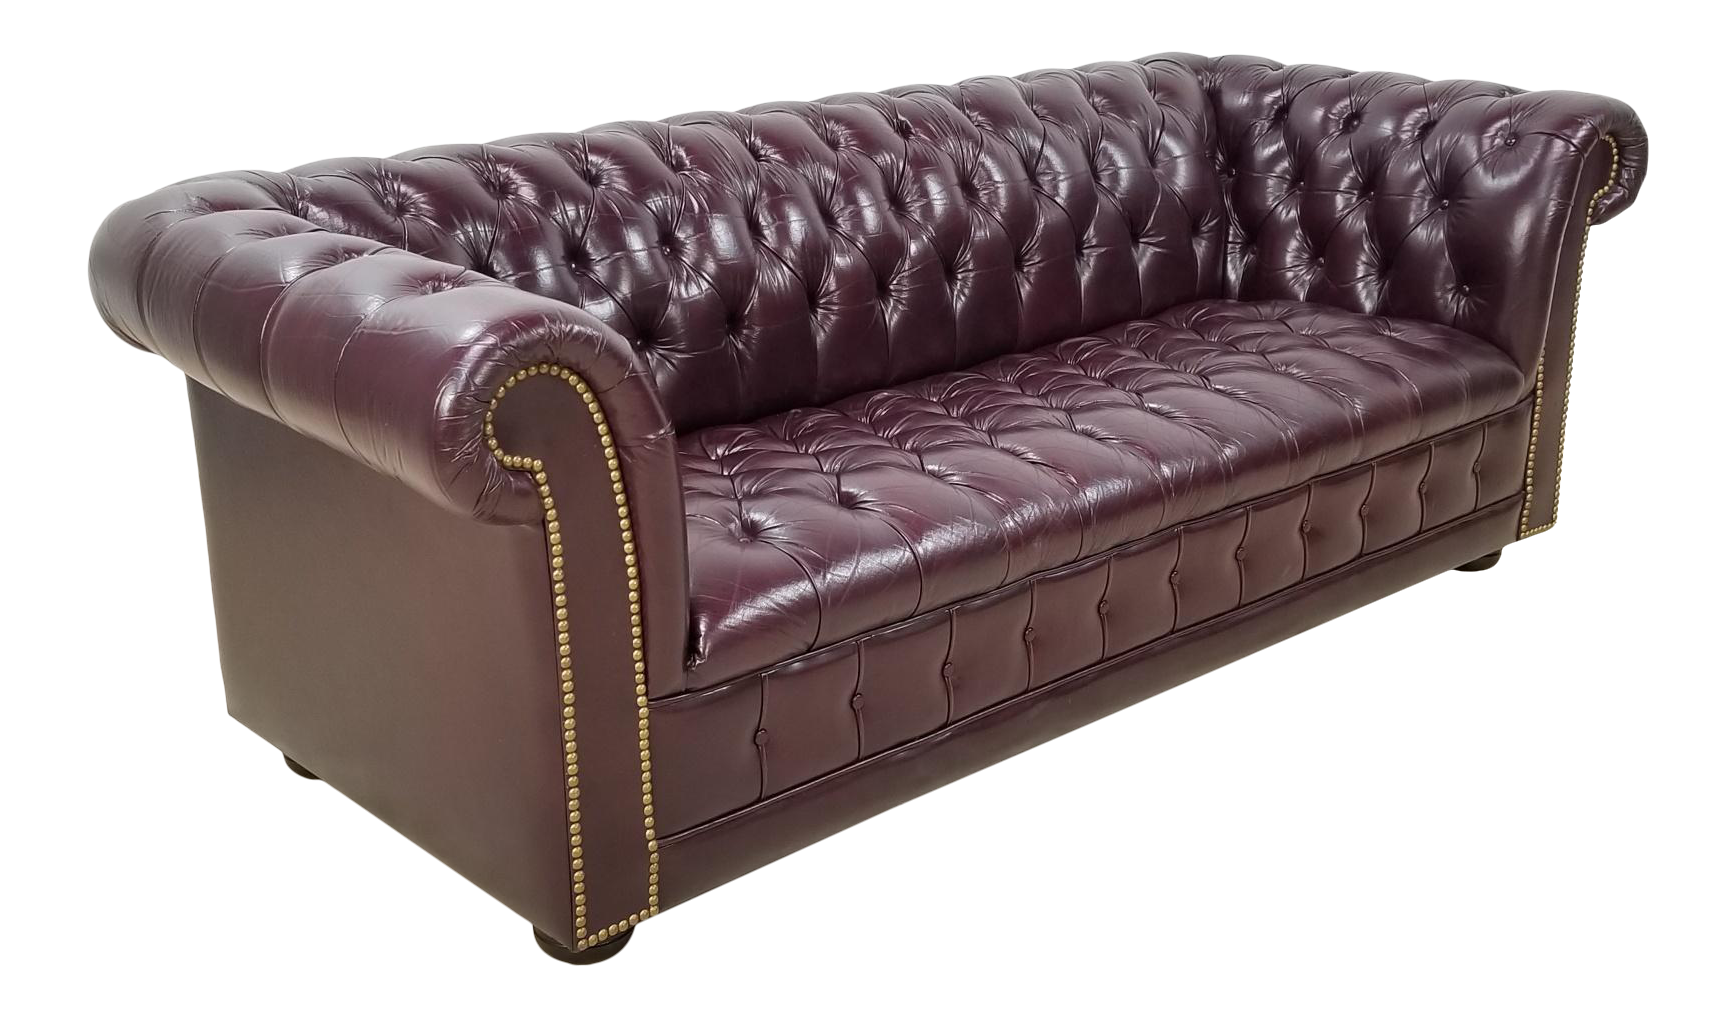 - Chesterfield Tufted Leather Sofa High End Executive Chairish